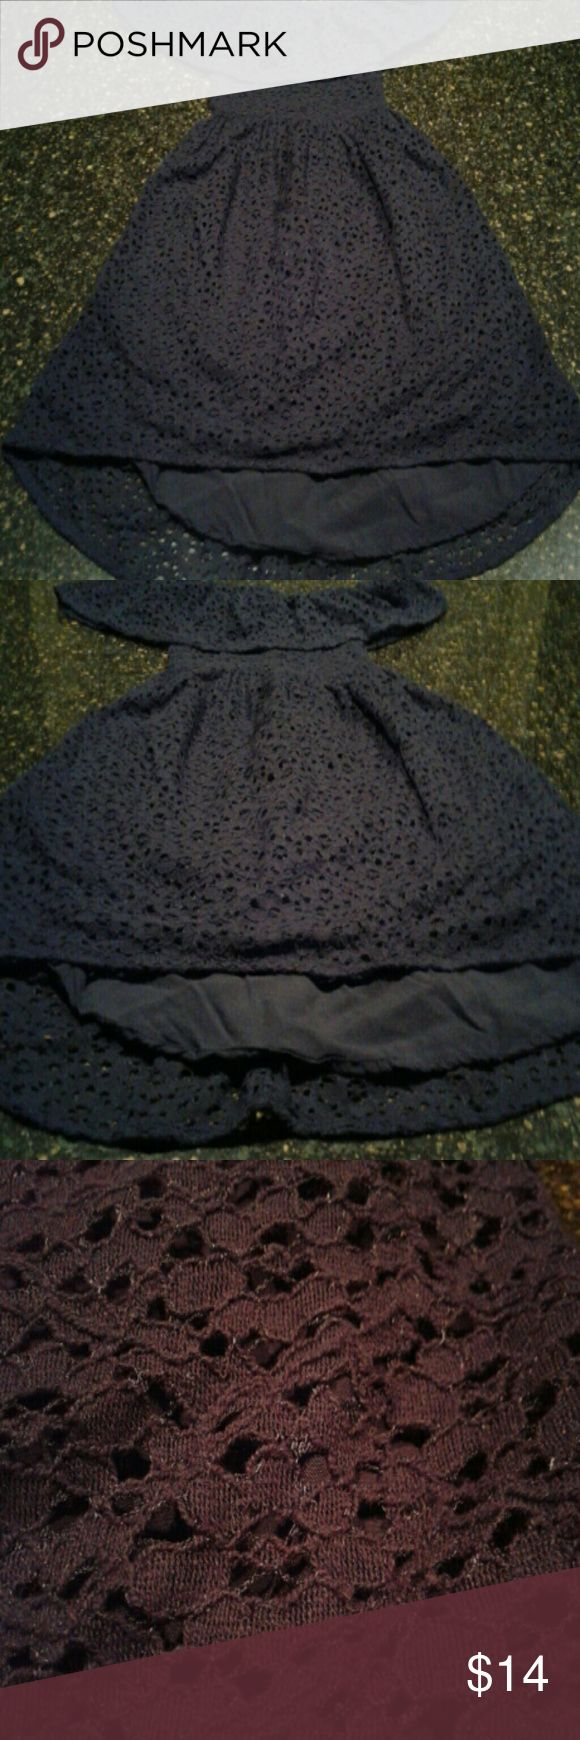 Abercrombie Girls Dress Very nice Navy Blue Girls dress.. Very stylish and perfect condition.. Size M in girls and goes for about 30-35 new Abercrombie & Fitch Dresses Casual